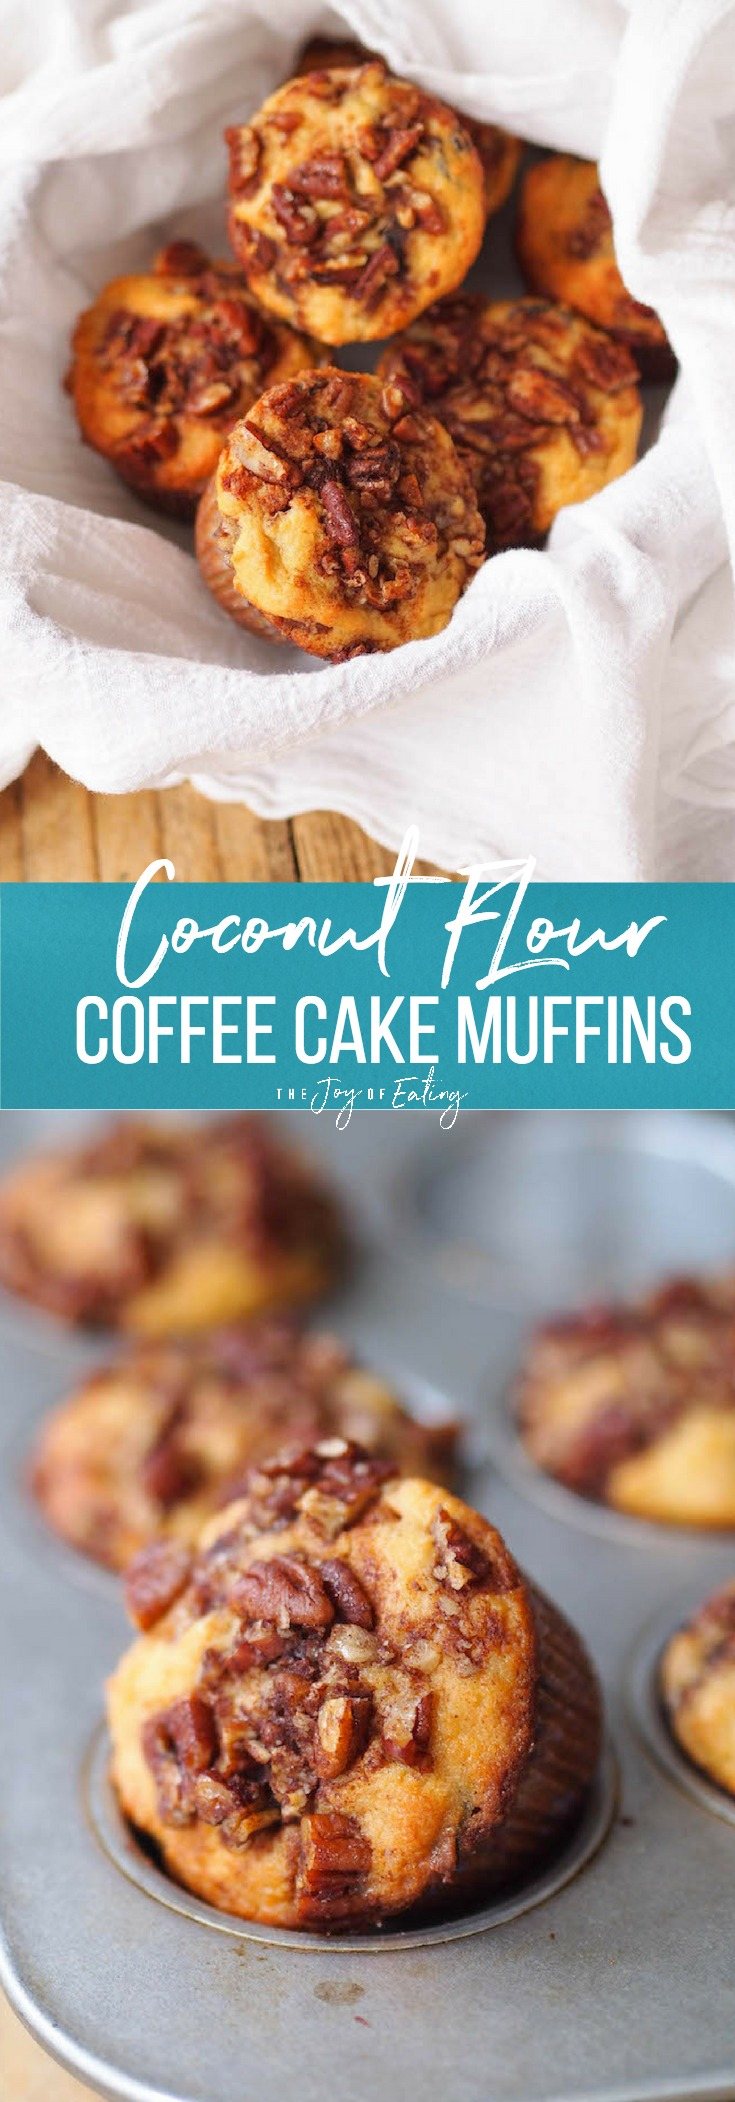 Coconut Flour Coffee Cake Muffins